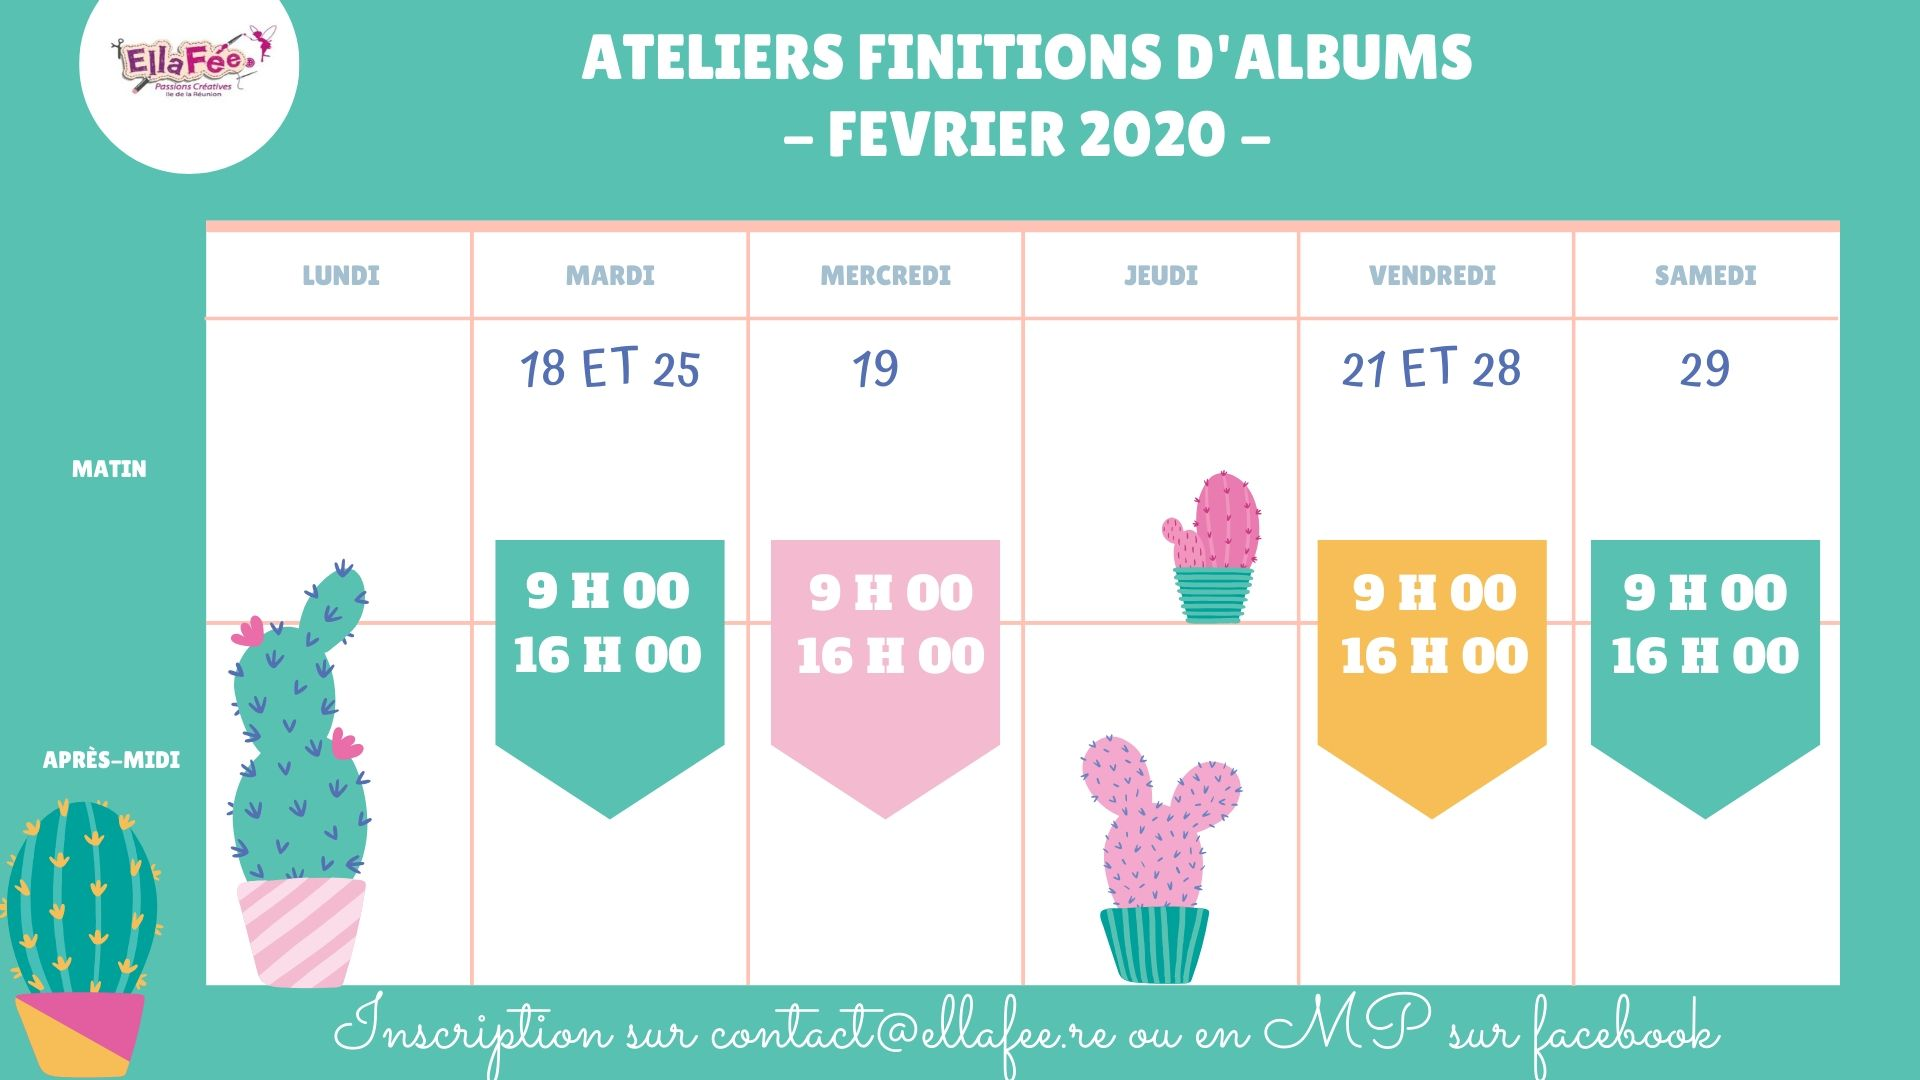 ATELIER FINITION D ALBUM